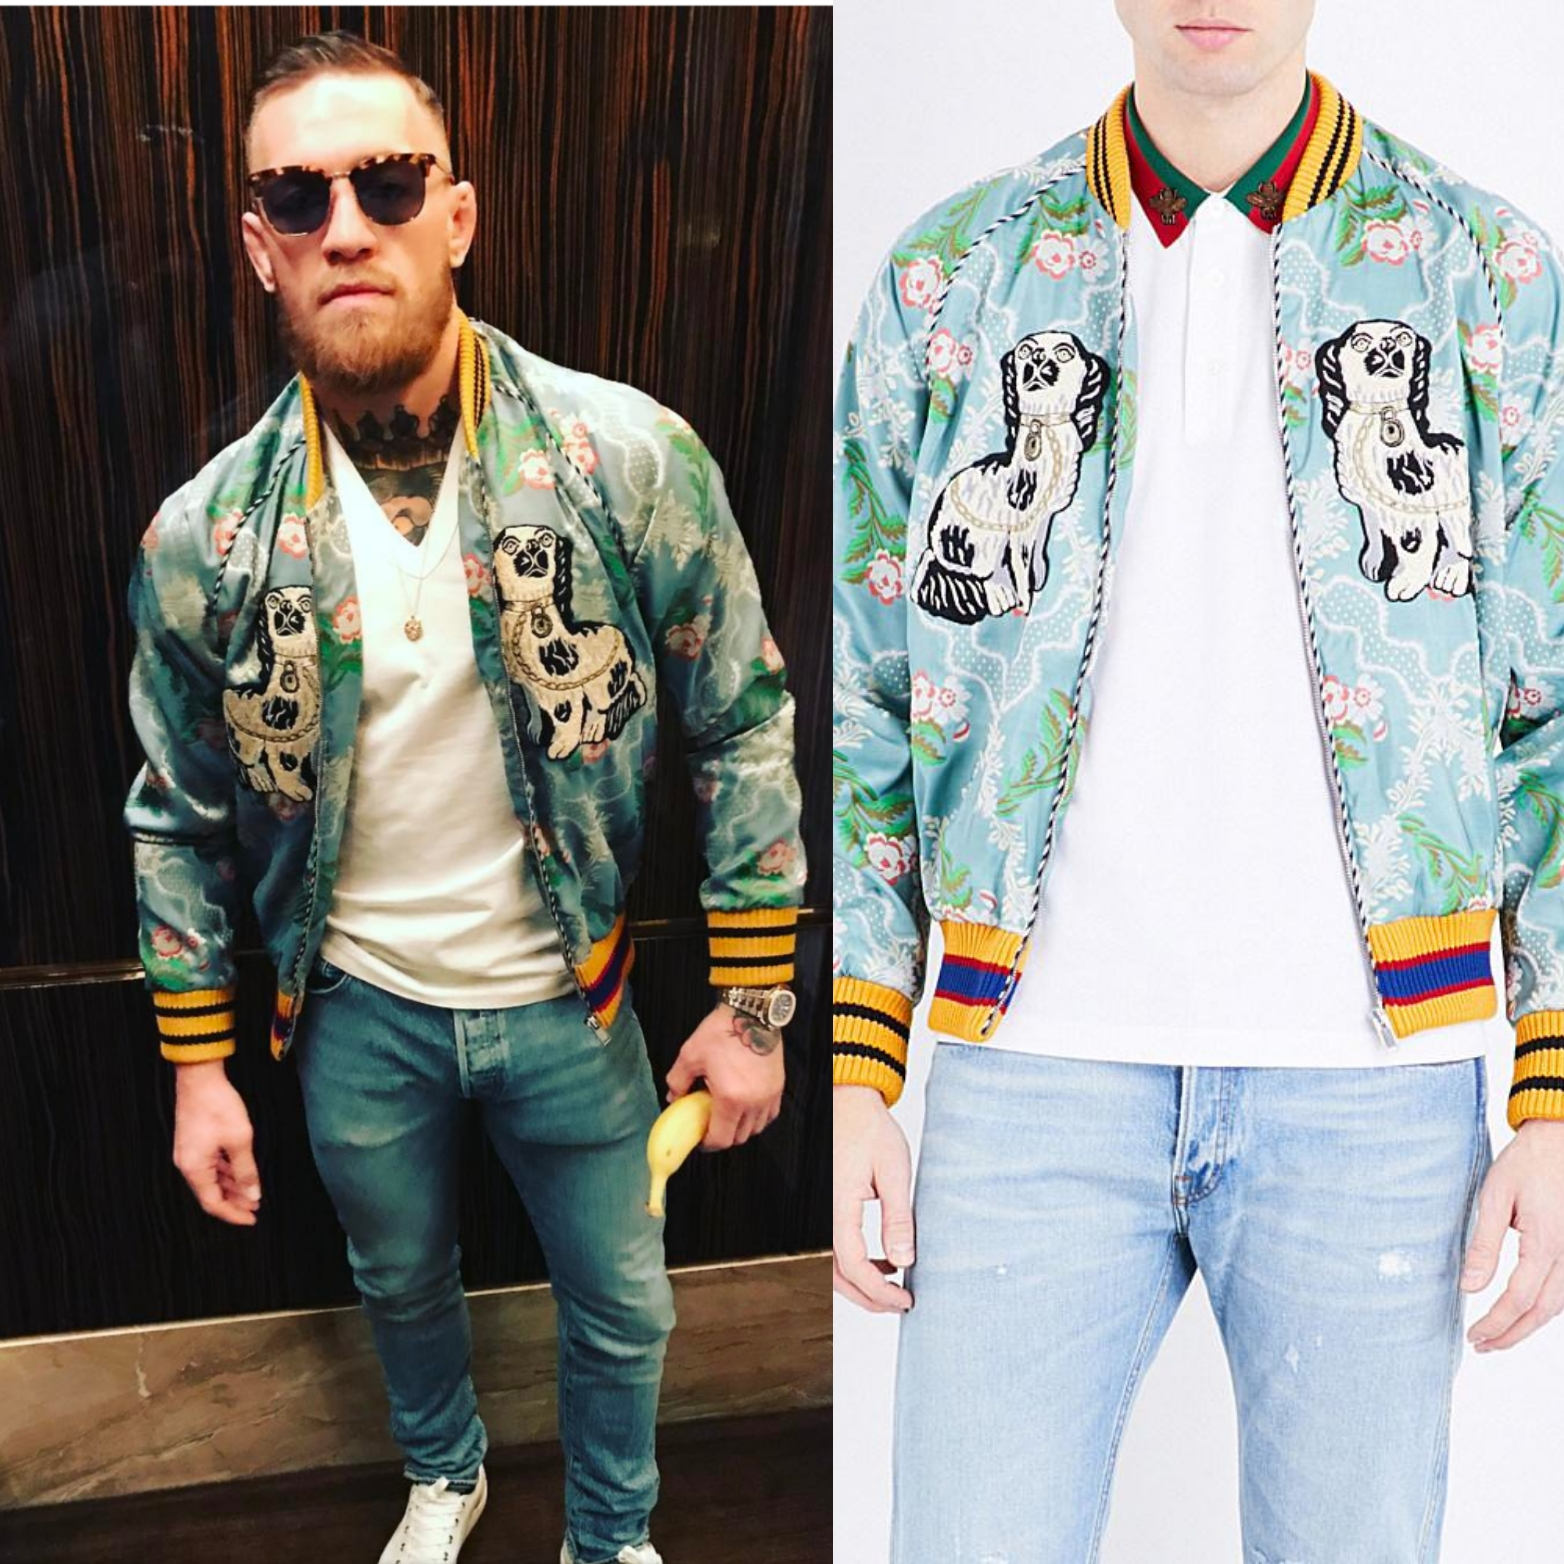 Conor Mcgregor's Instagram Gucci Floral Men's Fashion ...